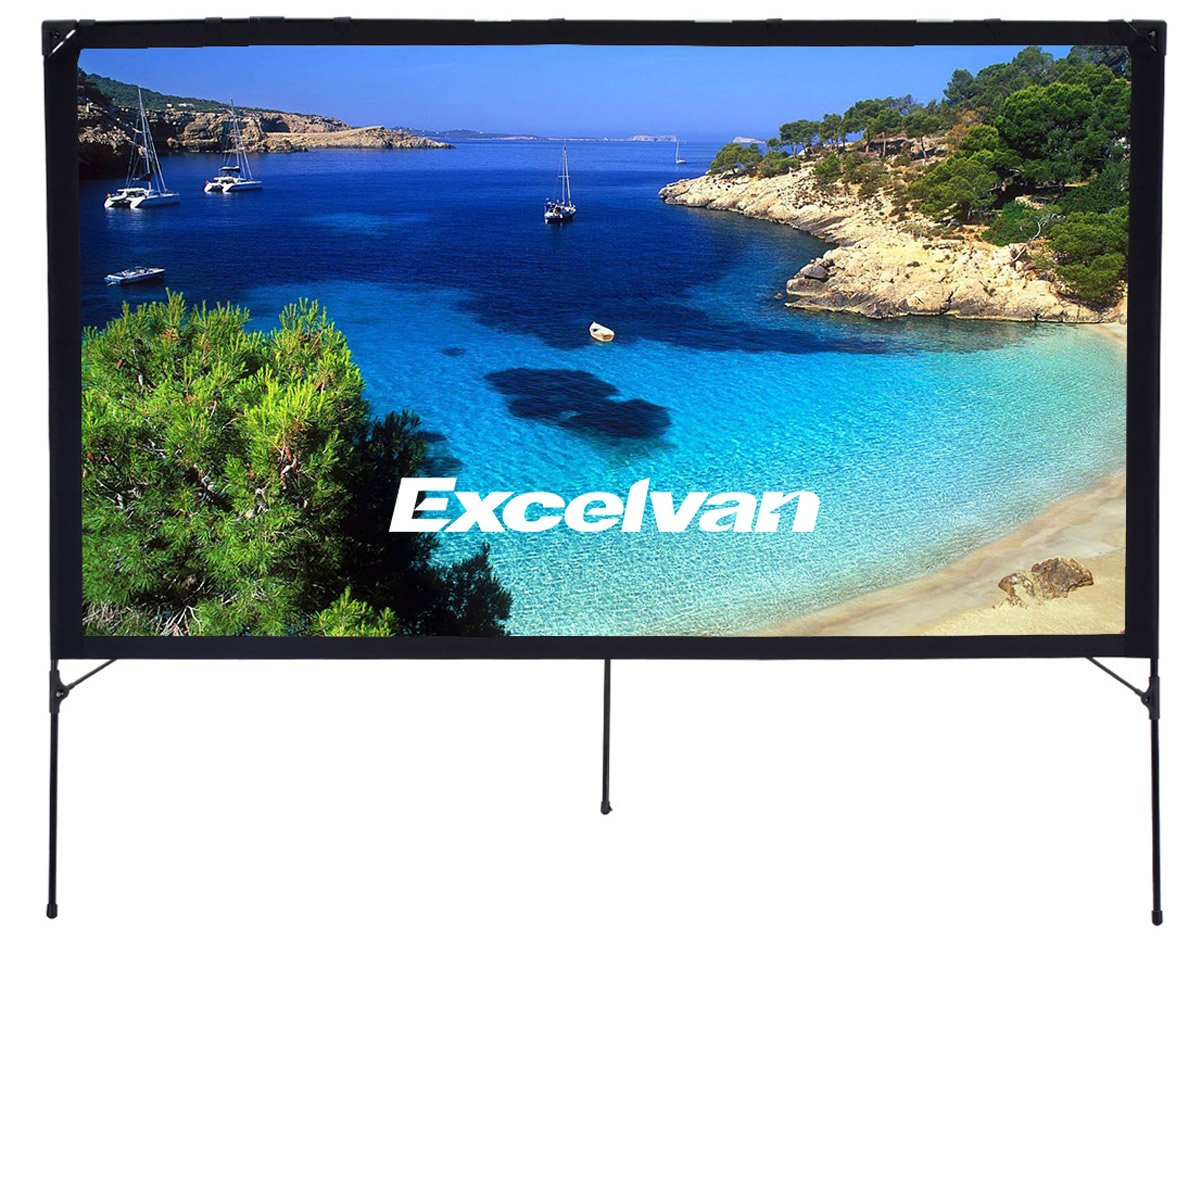 Excelvan Portable Movie Screen 16:9 Indoor Outdoor Projector Screen Foldable DIY Display Screen for Home Cinema Education Office Public Presentations, with Tent Camp Stand(80 inch) by Excelvan